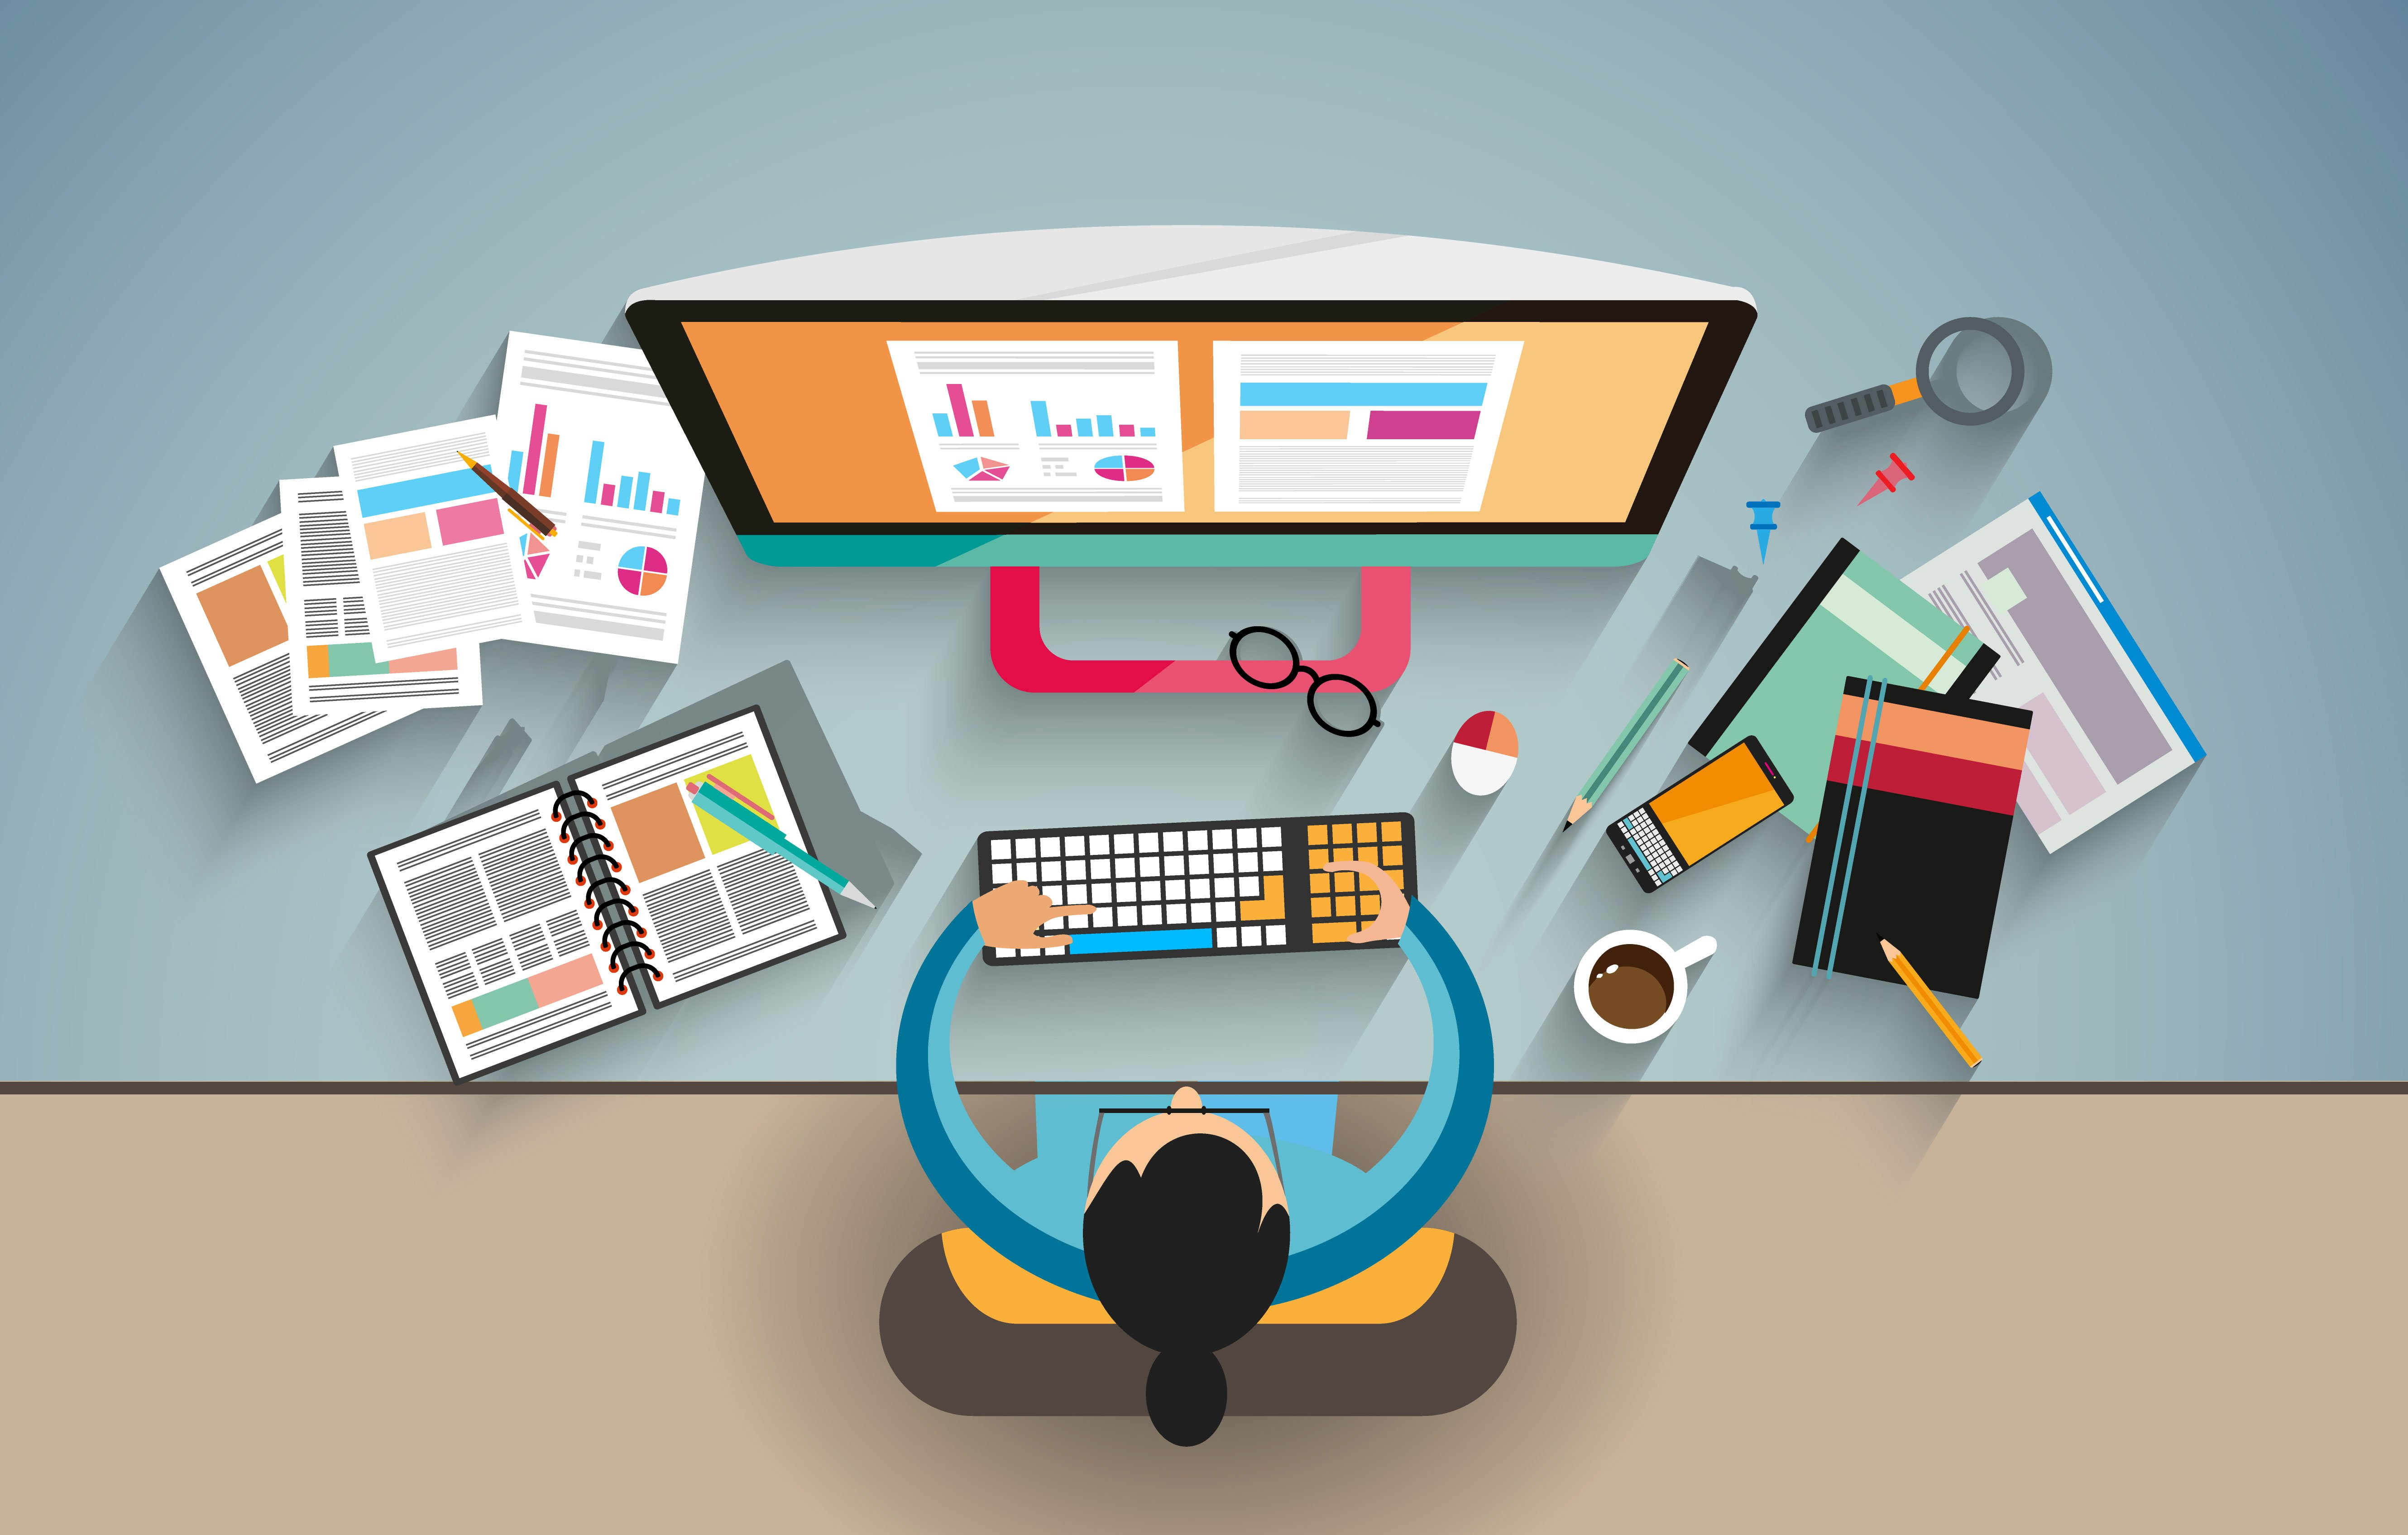 Why Web Design Is A Good Career Choice